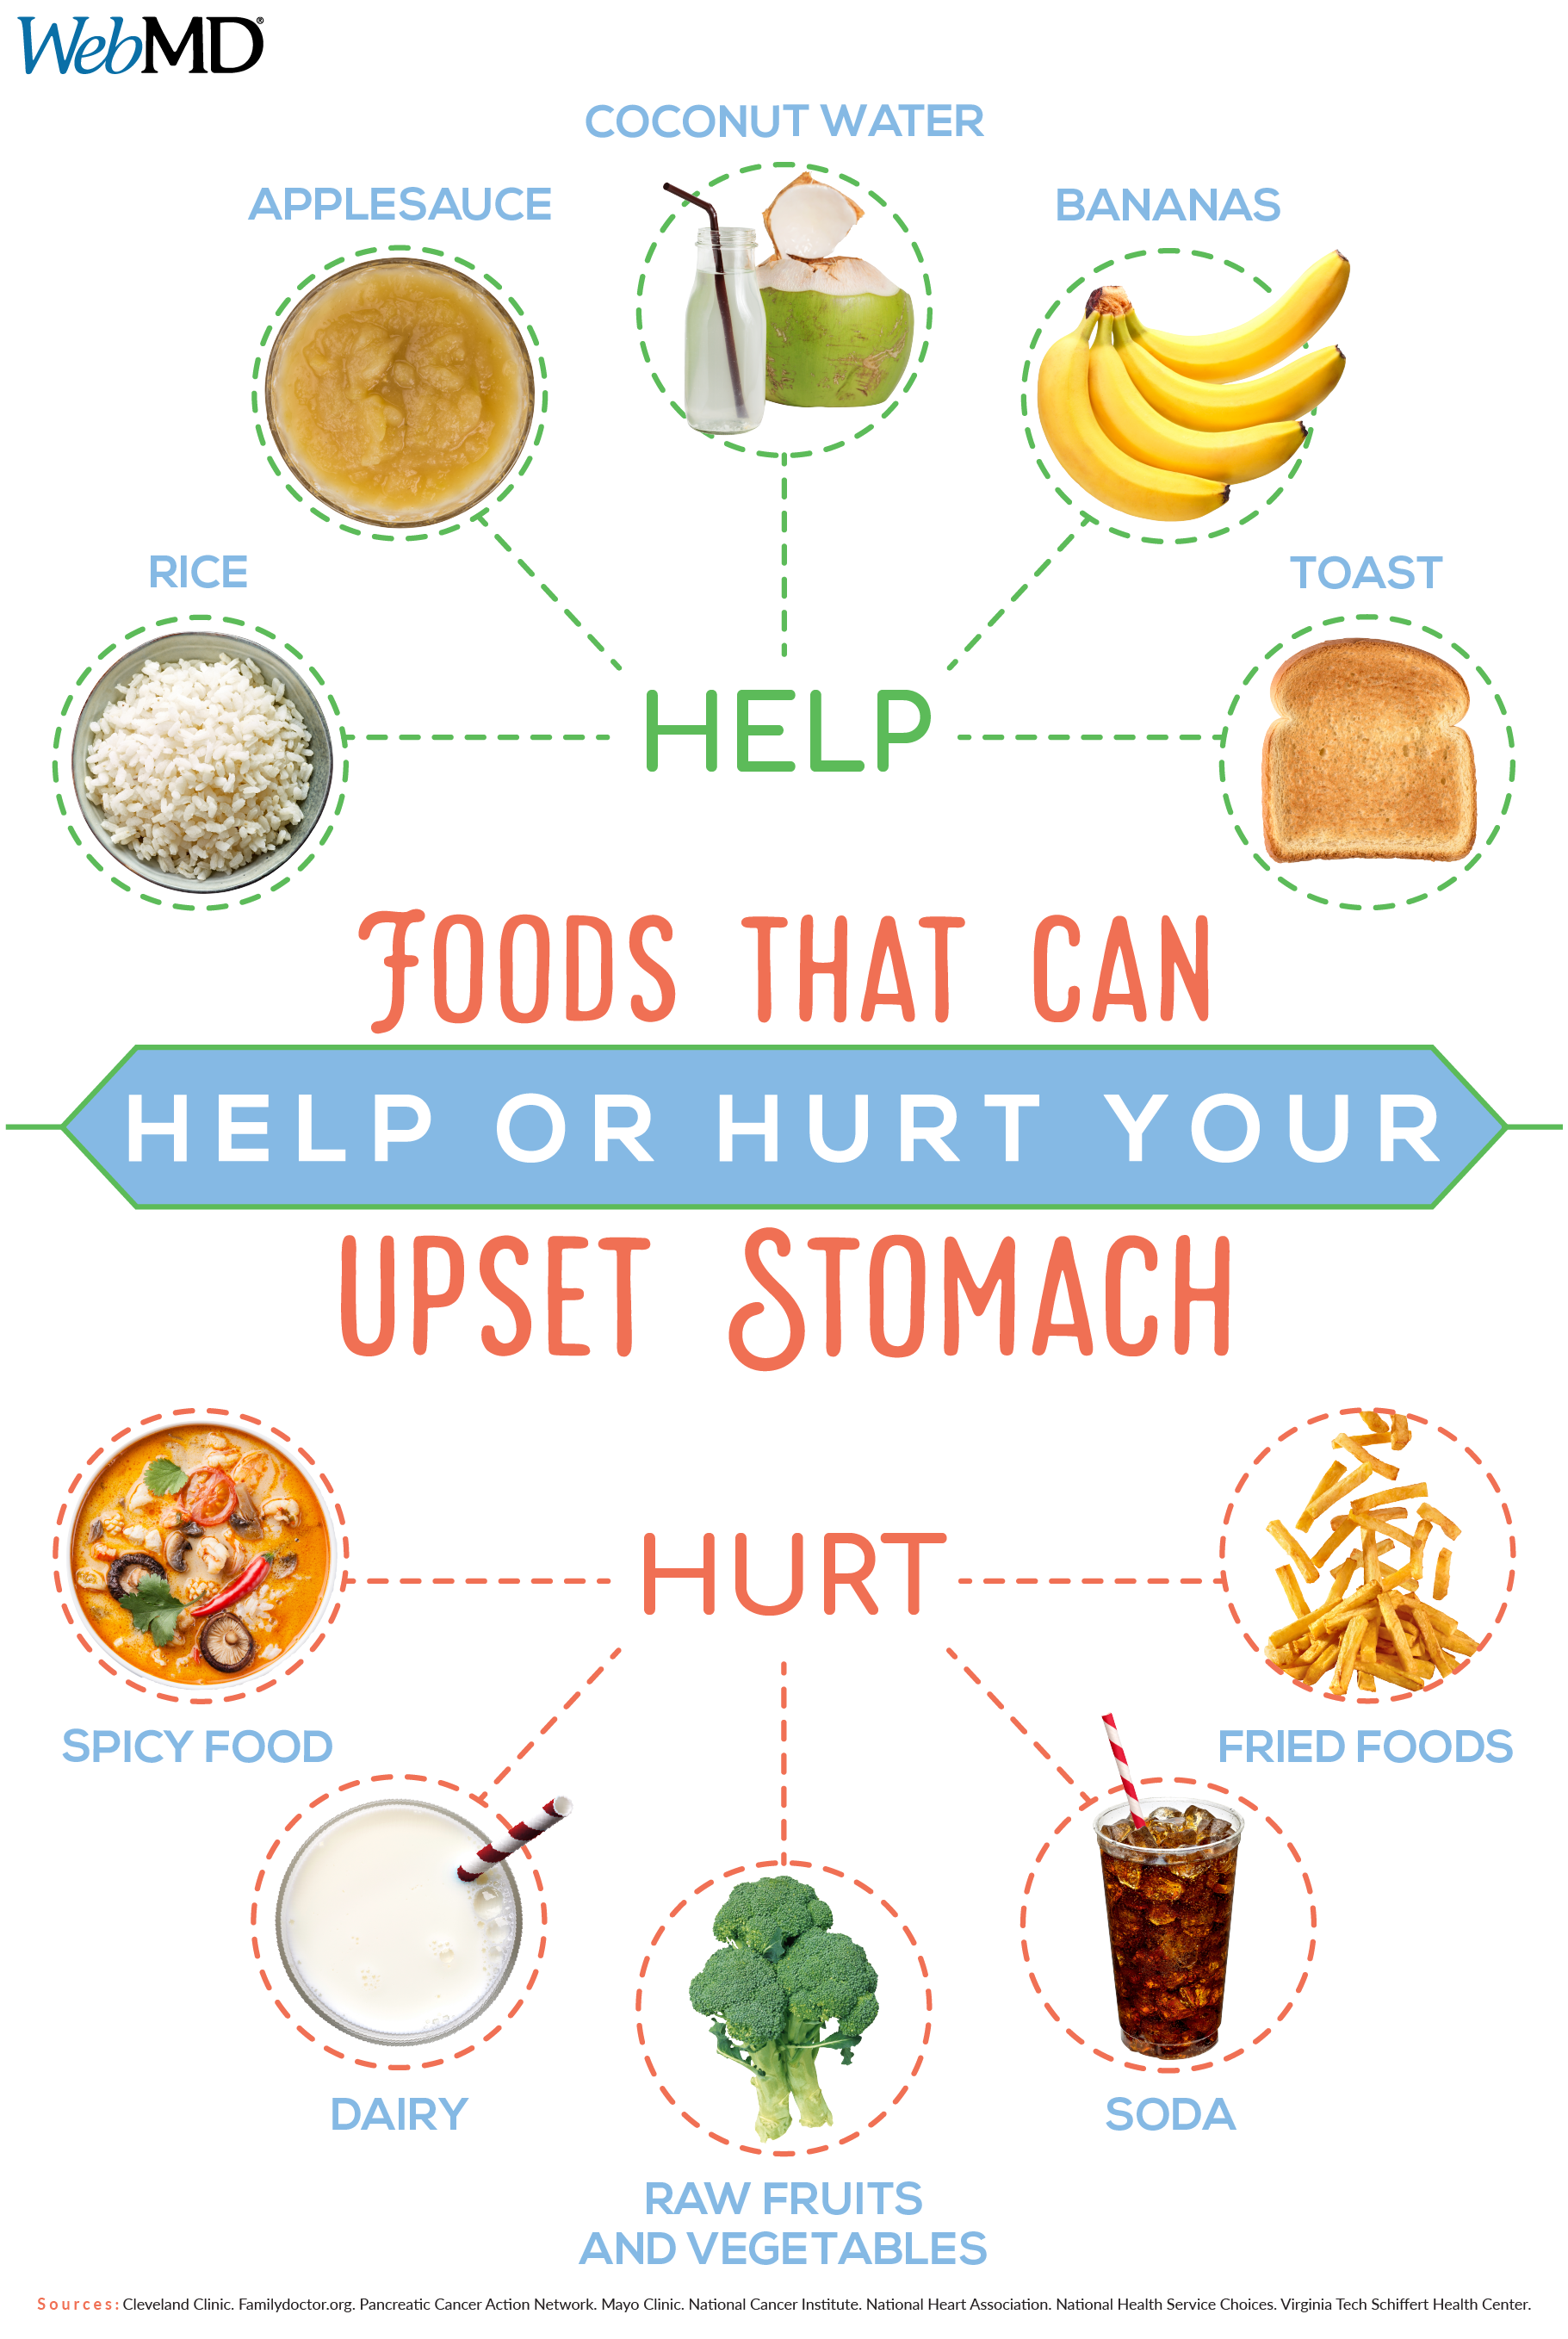 What foods make an upset stomach feel better